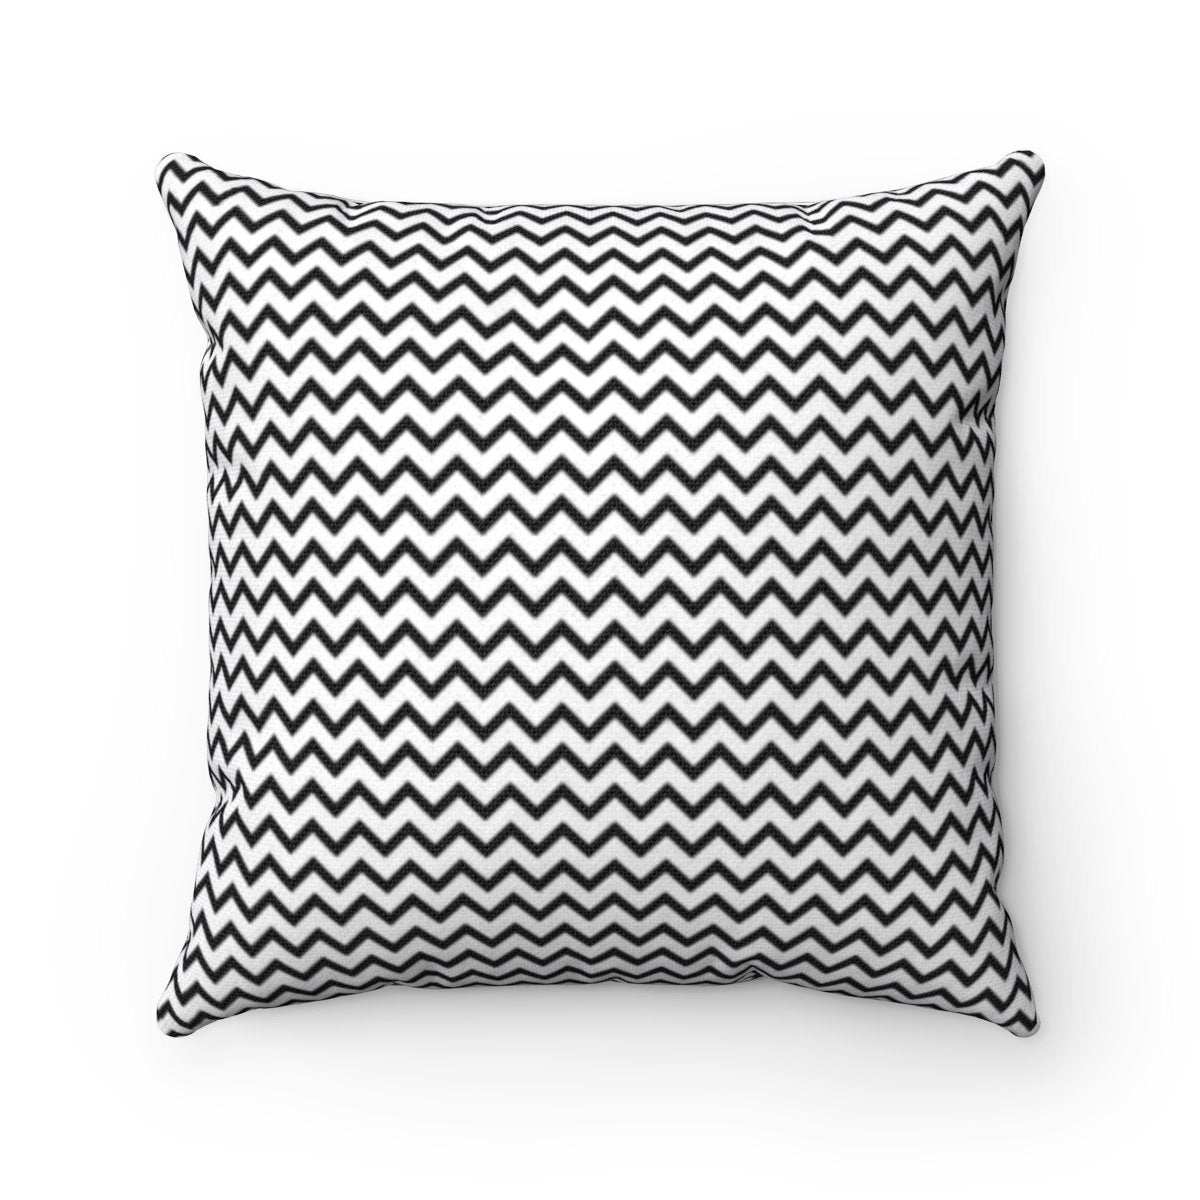 2 in 1 Black and Stripes and chevron decorative cushion cover-Home Decor - Decorative Accents - Pillows & Throws - Decorative Pillows-Maison d'Elite-Très Elite